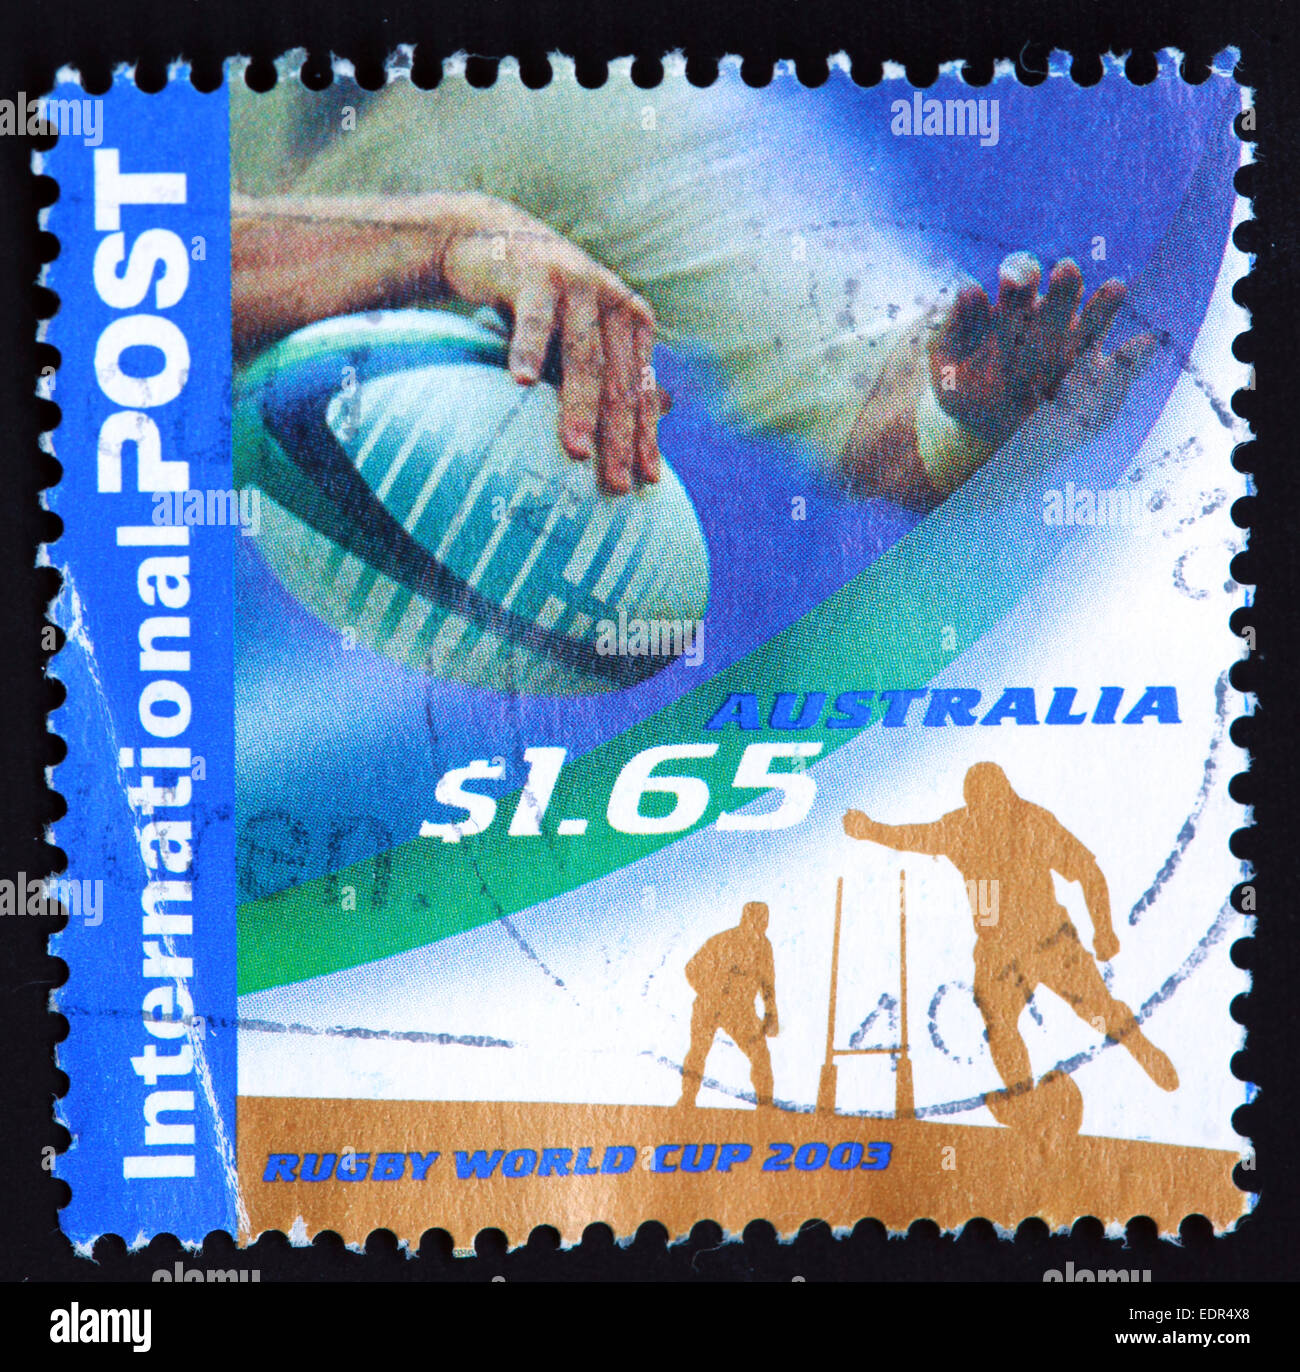 International Post,ball,rugby ball,player,players,Used and Postmarked,Used,and,postmarked,perforated,Australia,stamp,Used,and,postmarked,Australia,Austrailian,Stamp,post,posting,mail,hobby,perforation,mark,postage,stamp,print,stamp,cancelled,stamp,payment,correspondence,postman,co,Gotonysmith,post,posting,mail,hobby,perforation,mark,postage,stamp,print,stamp,cancelled,canceled,stamp,payment,correspondence,postman,collection,collector,philately,philatelist,letter,price,history,retro,Australian,Vintage,delivery,date,relationship,communication,Oz,Australia,DownUnder,classic rare unique Austrailian financial,investment,invest,value,British,empire,nation,canceled,printed on black background,close-up,closeup,close,up,sent,send,philately,mailing,shipping,postoffice,office,isolated,circa,special,colour,color,postmarked,marked,airmail,aged,antique,retro,cutting,historic,old,stamps,collection,stamp collection,album,Timbre,Sello,Stempel,Selo,Down Under,Black background